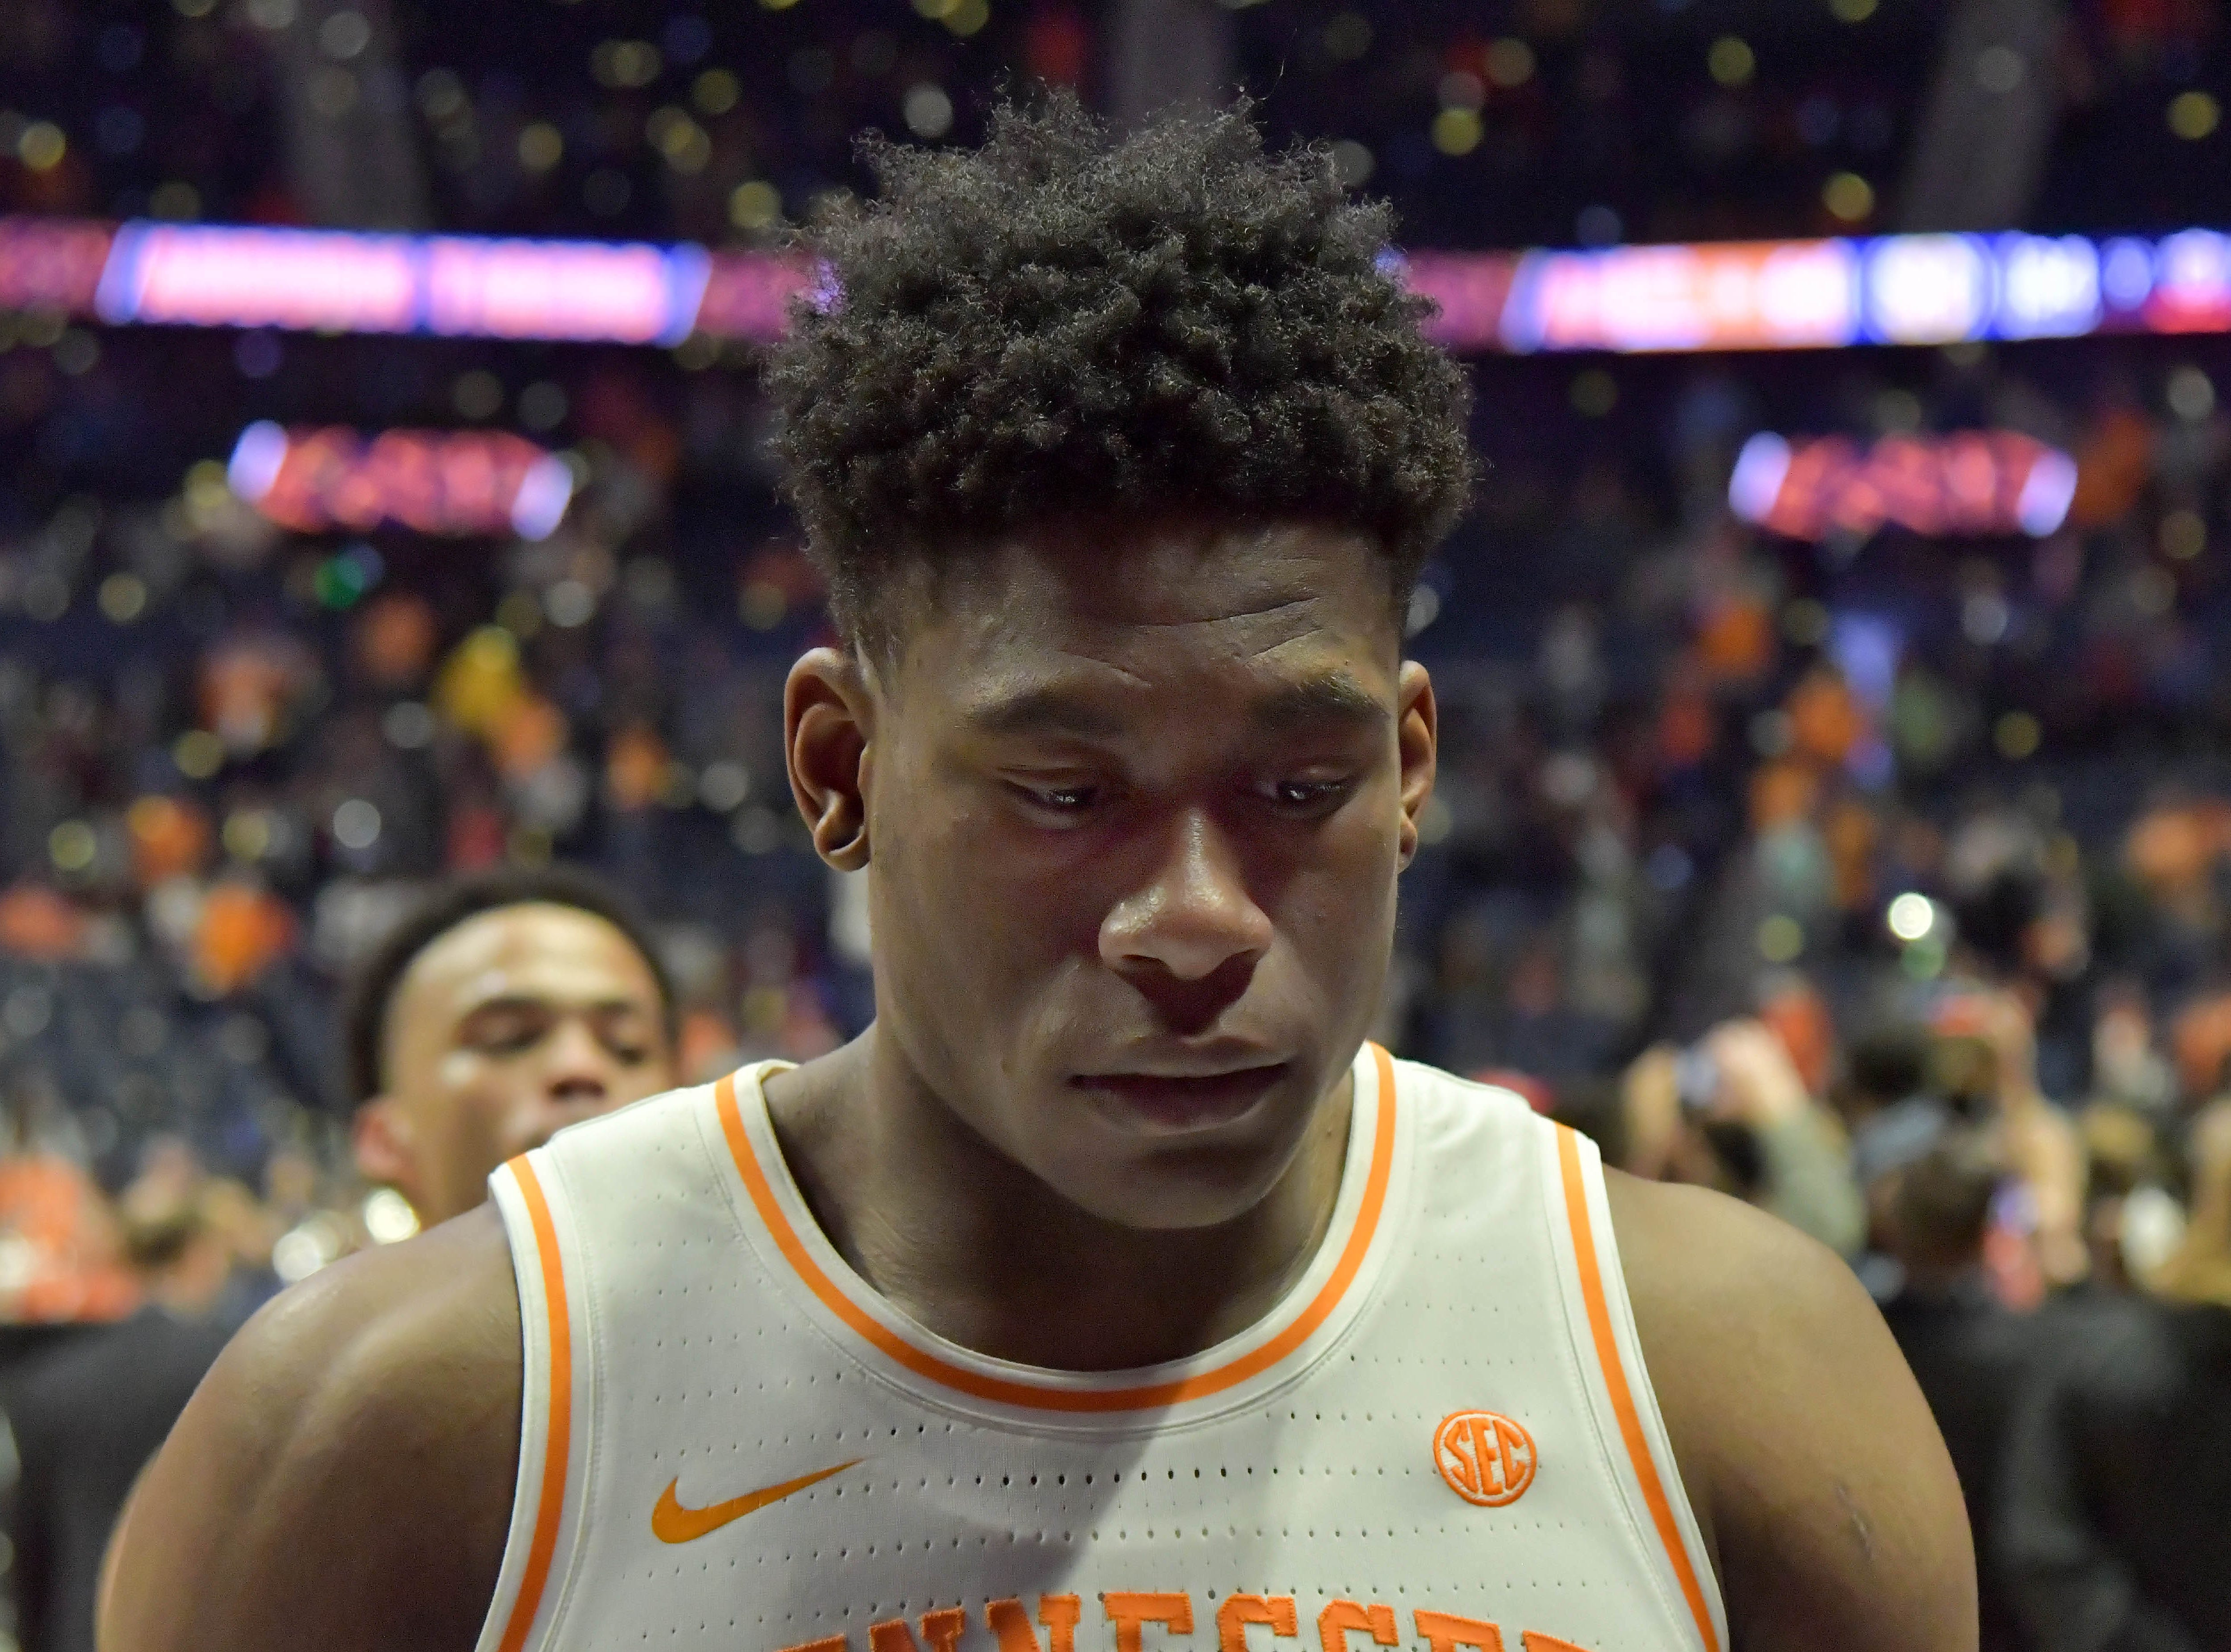 Mar 17, 2019; Nashville, TN, USA; Tennessee Volunteers guard Admiral Schofield (5) leaves the court after losing to the Auburn Tigers in the championship game of the SEC conference tournament at Bridgestone Arena. Auburn won 84-64. Mandatory Credit: Jim Brown-USA TODAY Sports